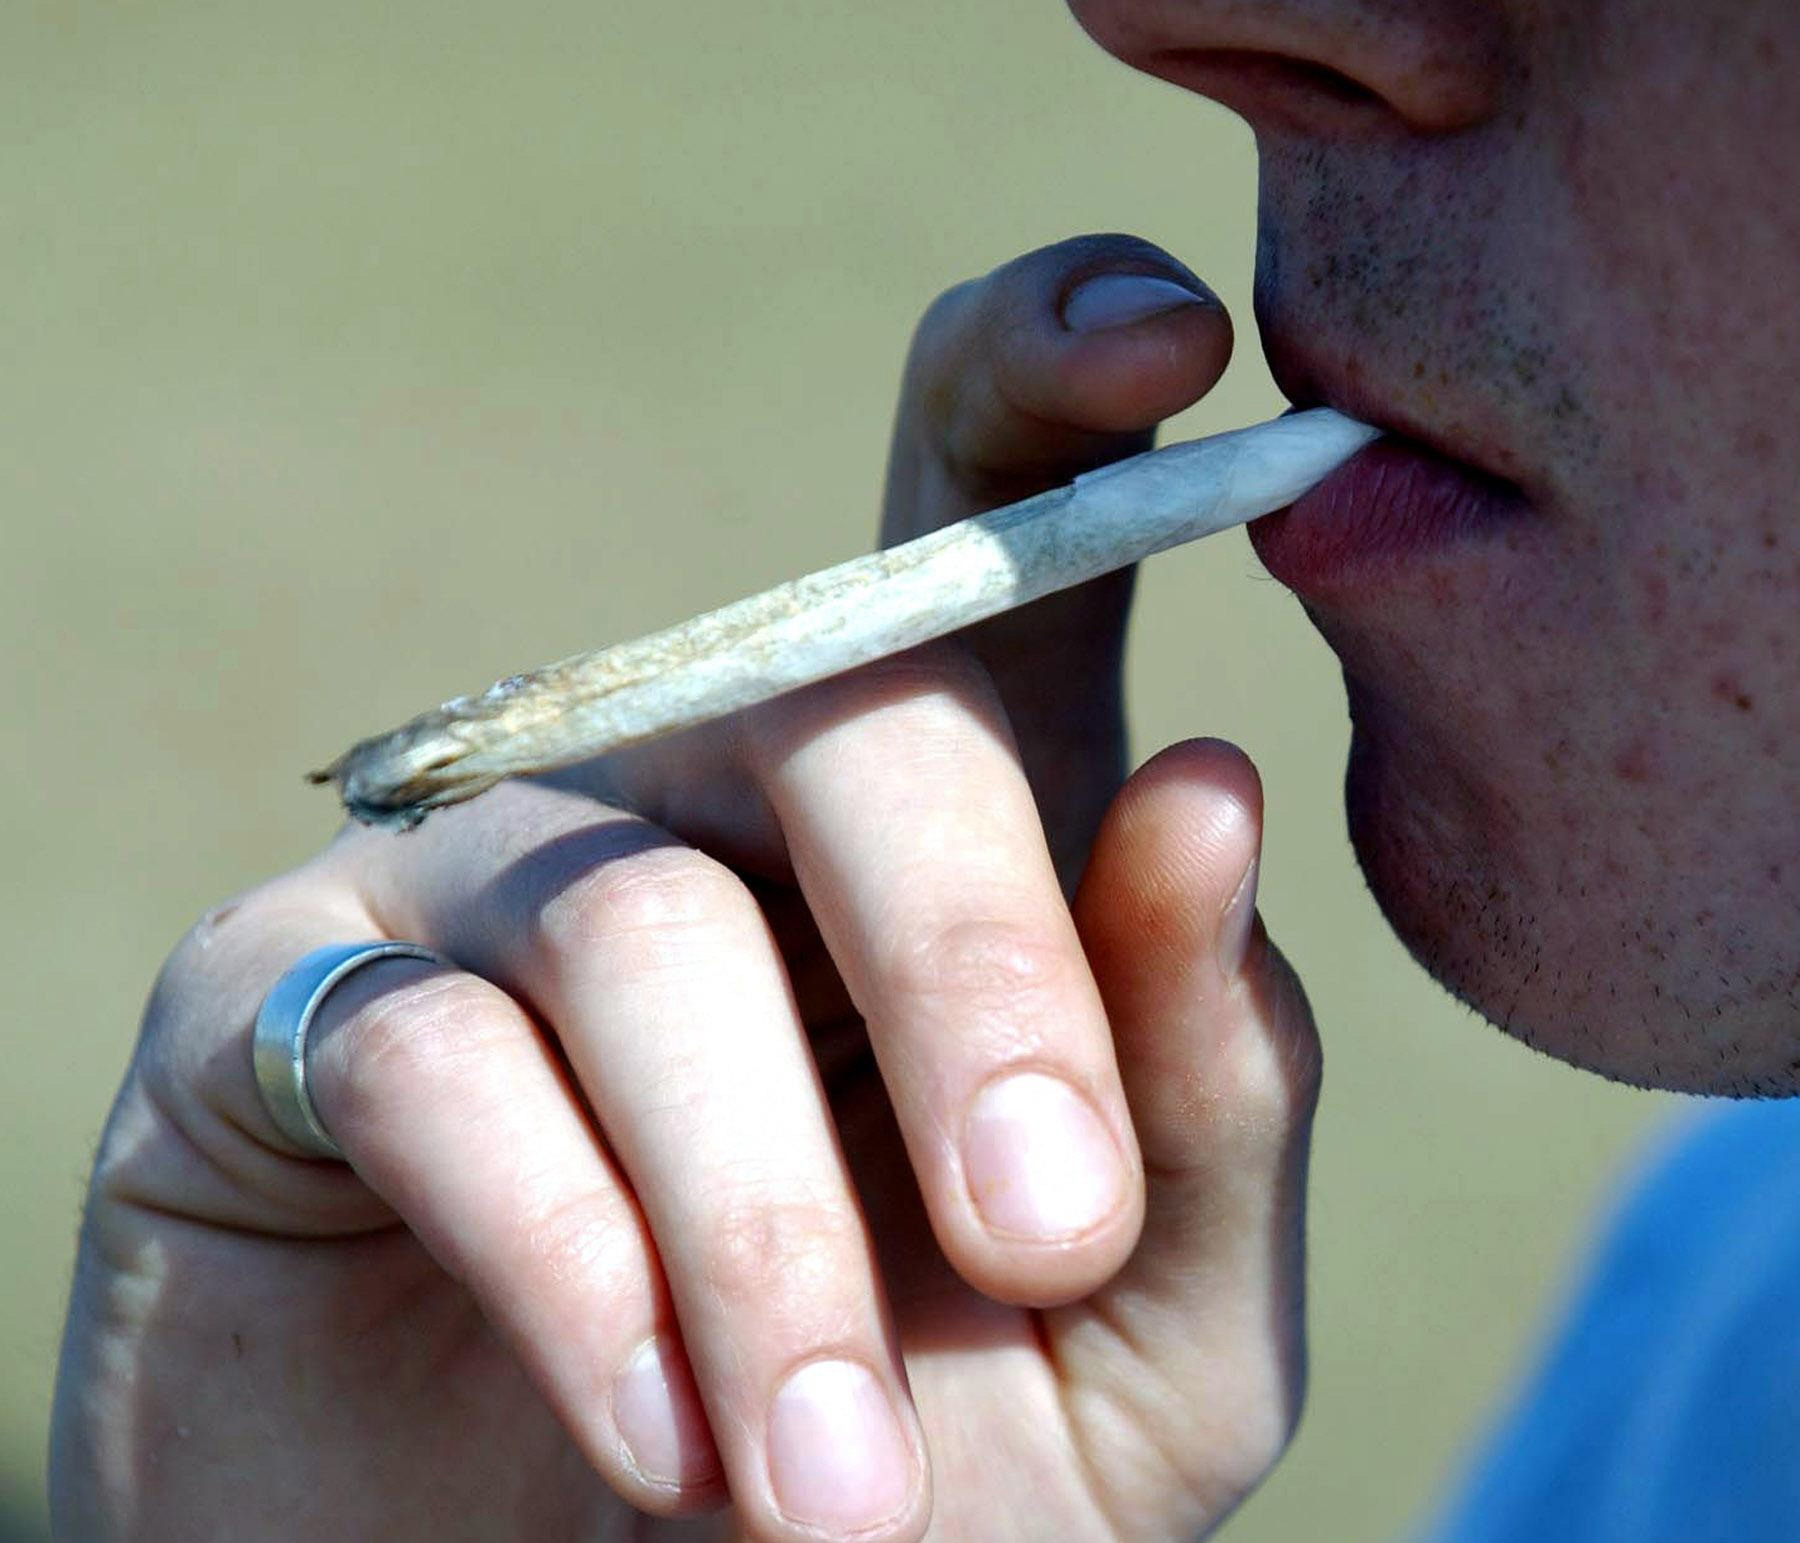 Undated PA file photo of a cannabis joint.